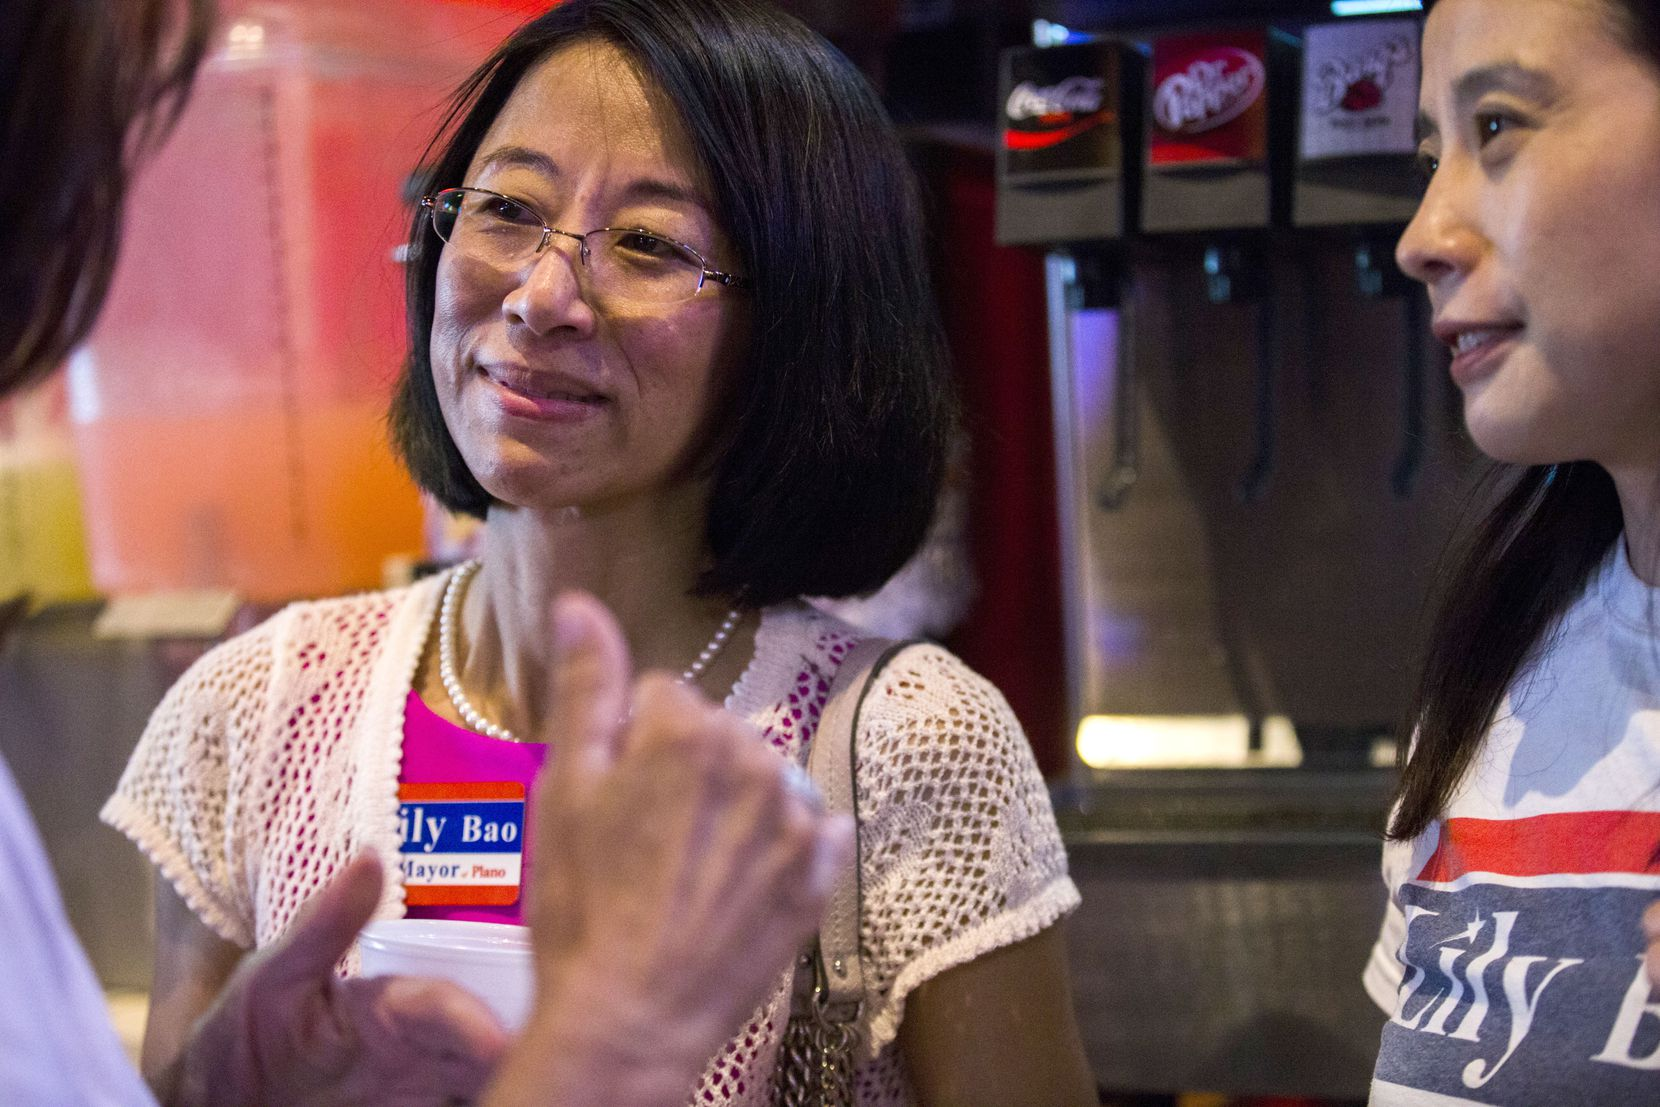 """Plano mayoral candidate Leilei """"Lily"""" Bao talks with supporters at an election night campaign party on Saturday, May 6, 2017 at Texadelphia in Plano."""